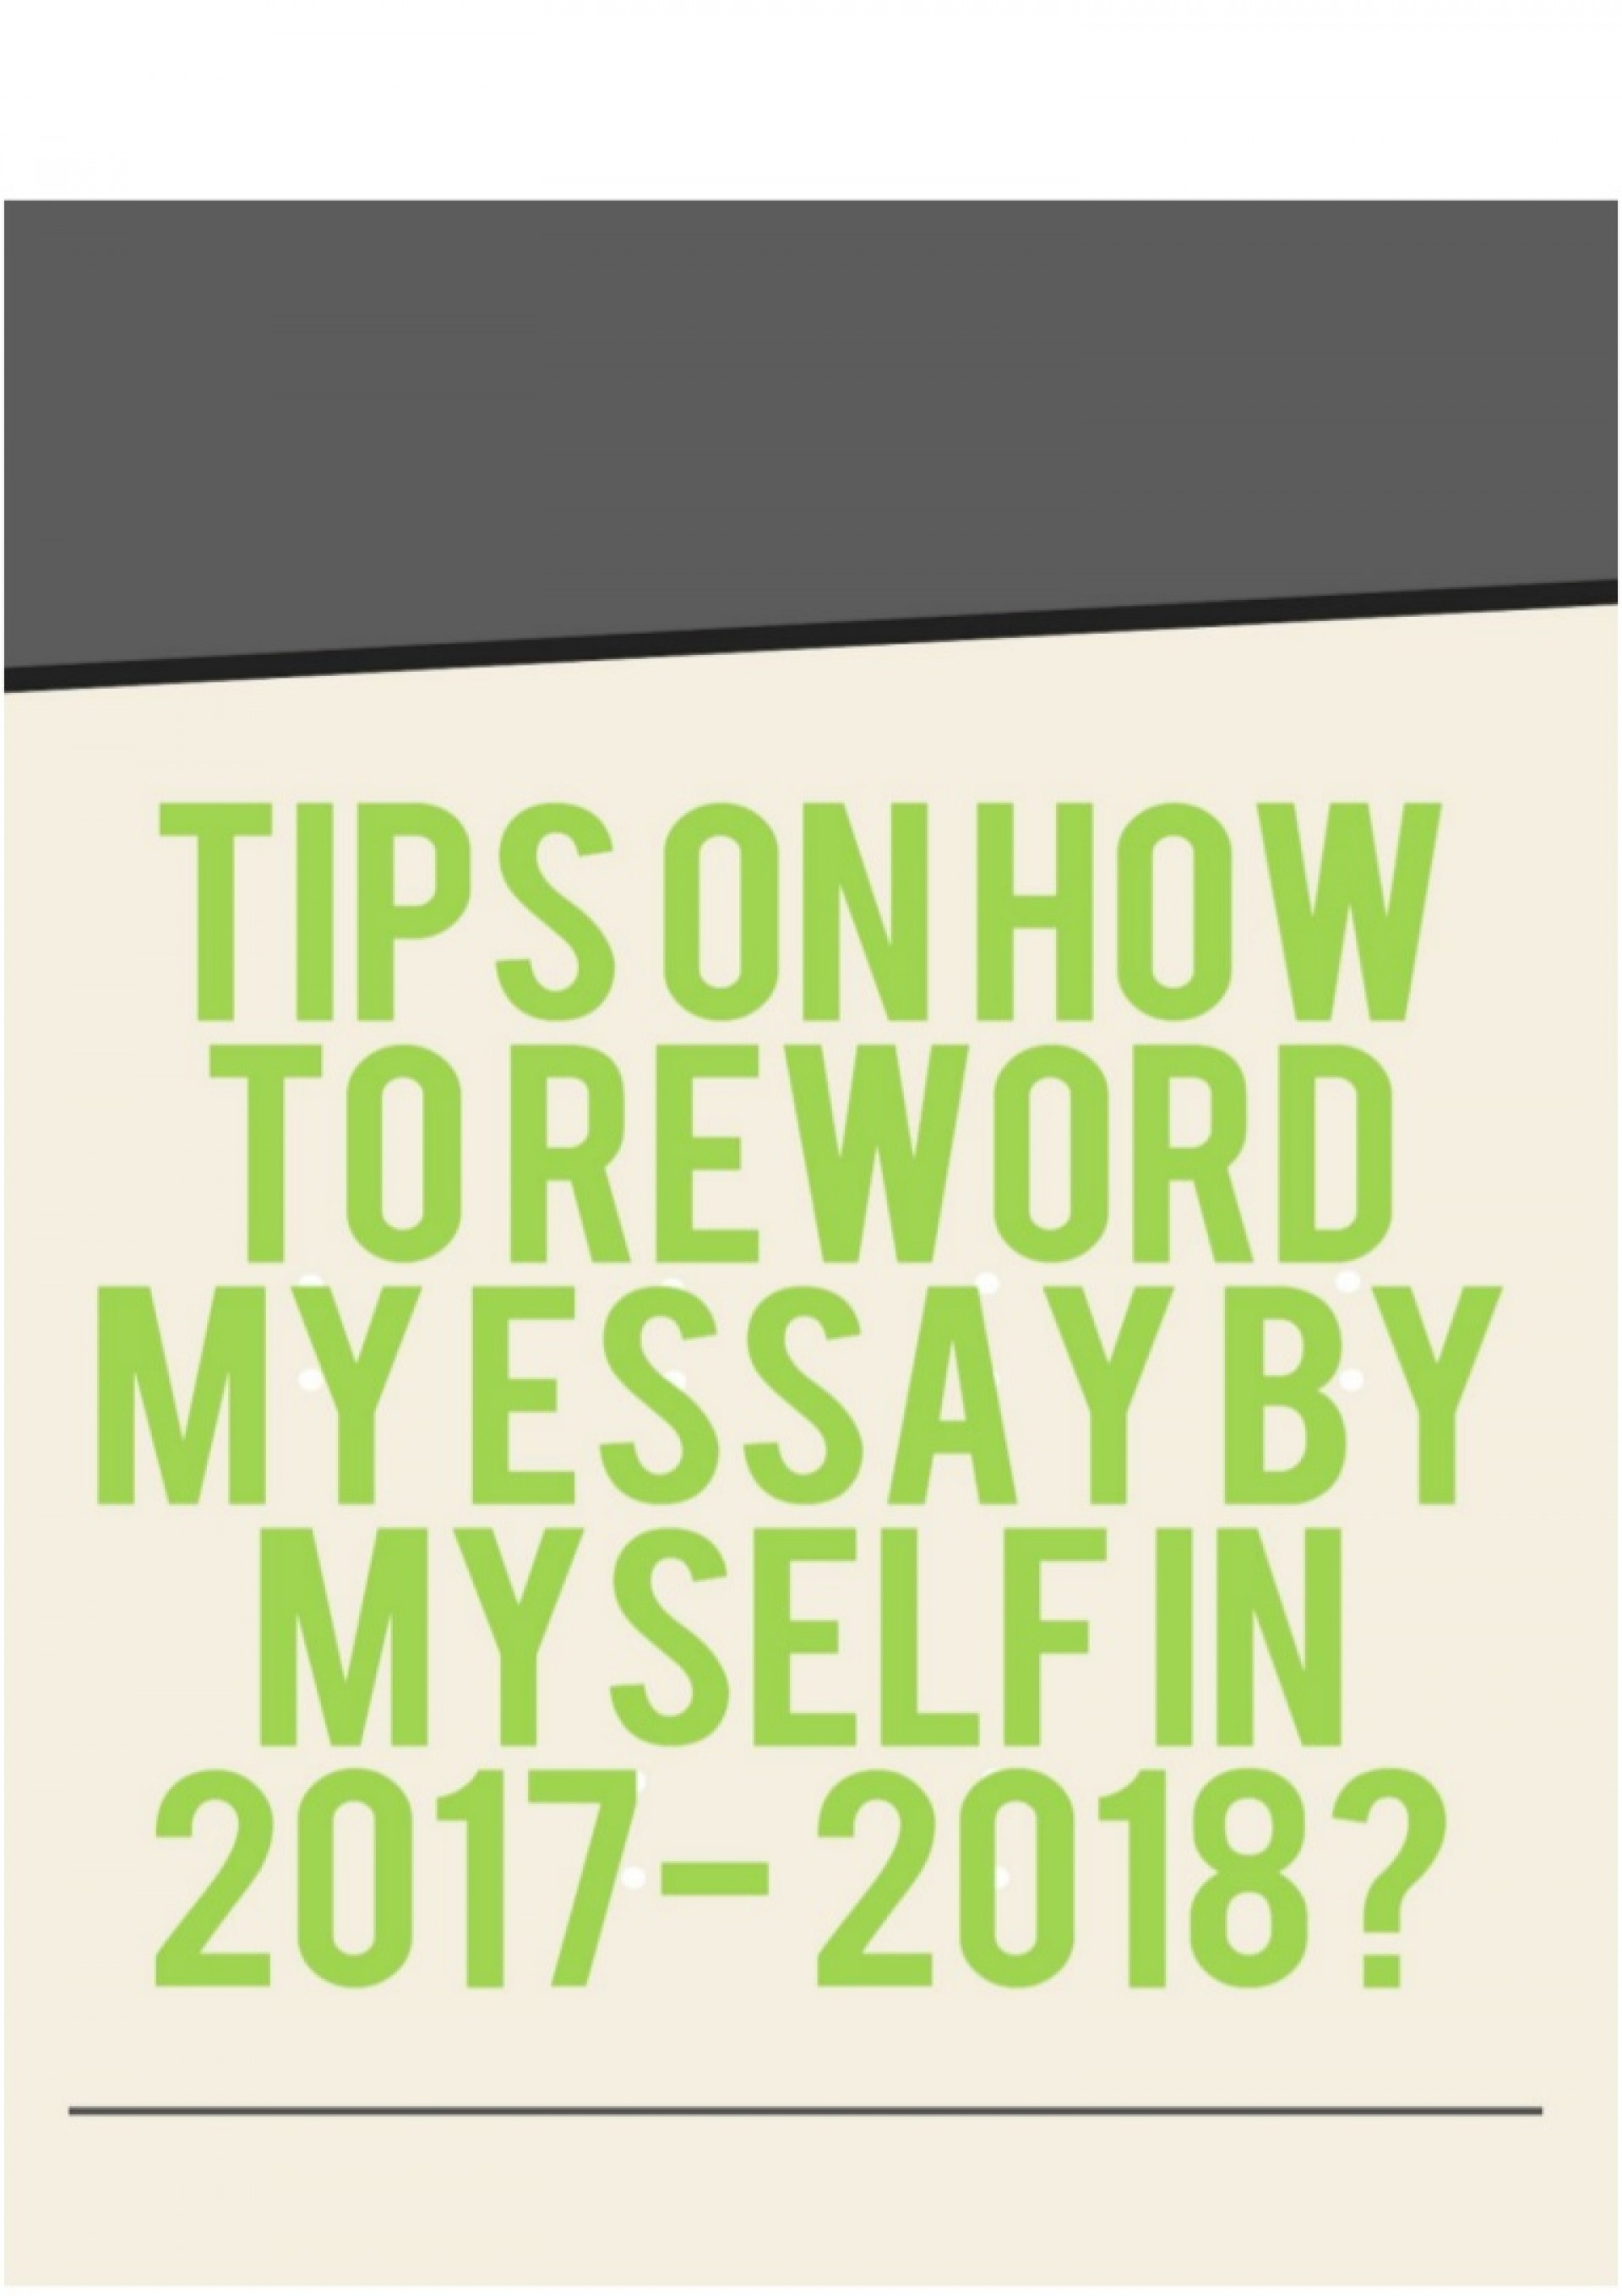 005 Reword My Essay Example Tipsonhowtorewordmyessaybymyselfin2017 Thumbnail Unique Free 1920